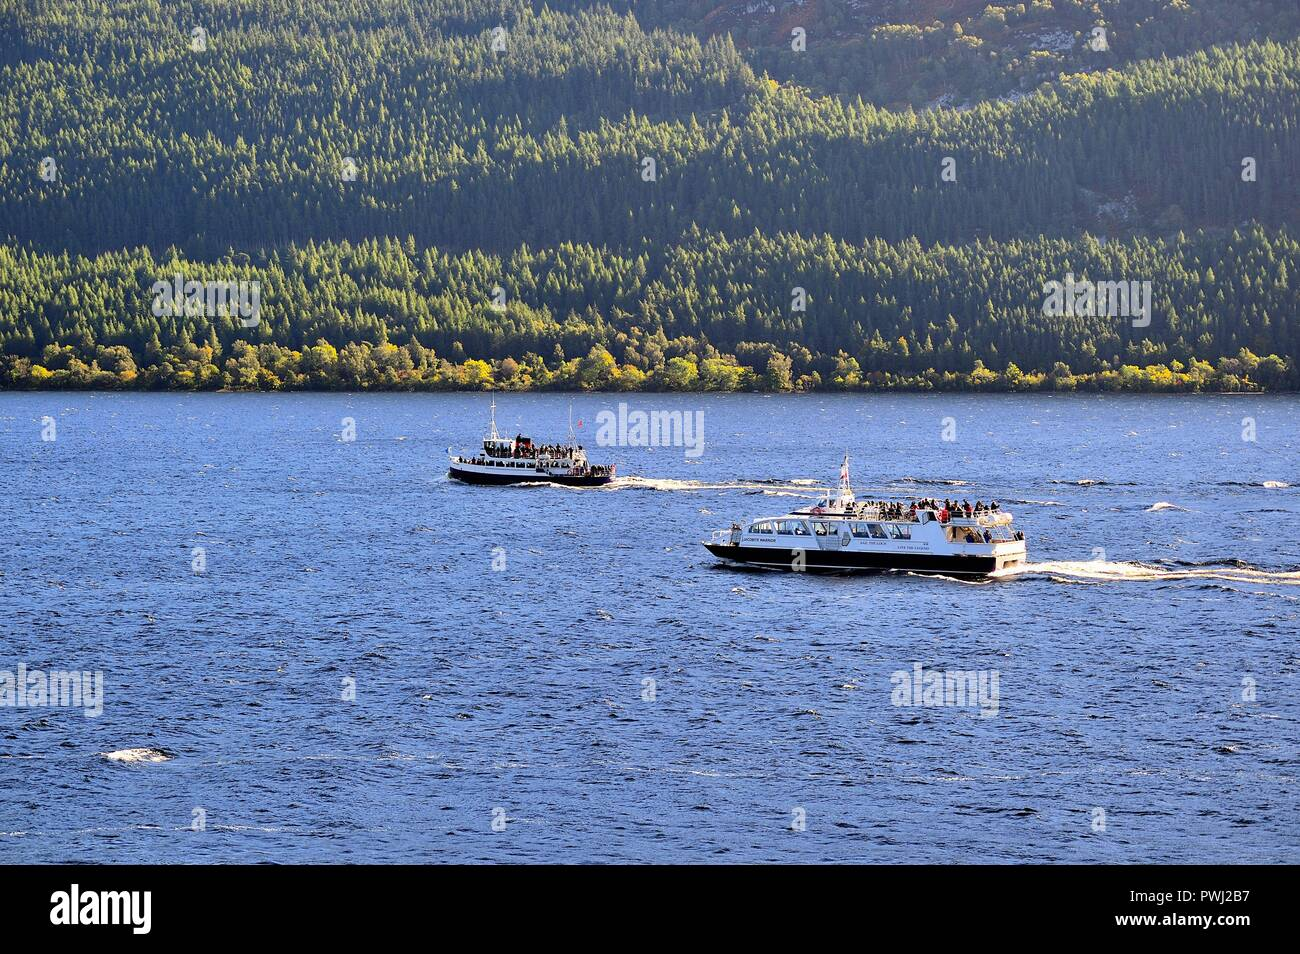 Drumnadrochit, Scotland, United Kingdom. A pair of tourist boats negotiating the waters of Loch Ness within the Scottish Highlands. - Stock Image